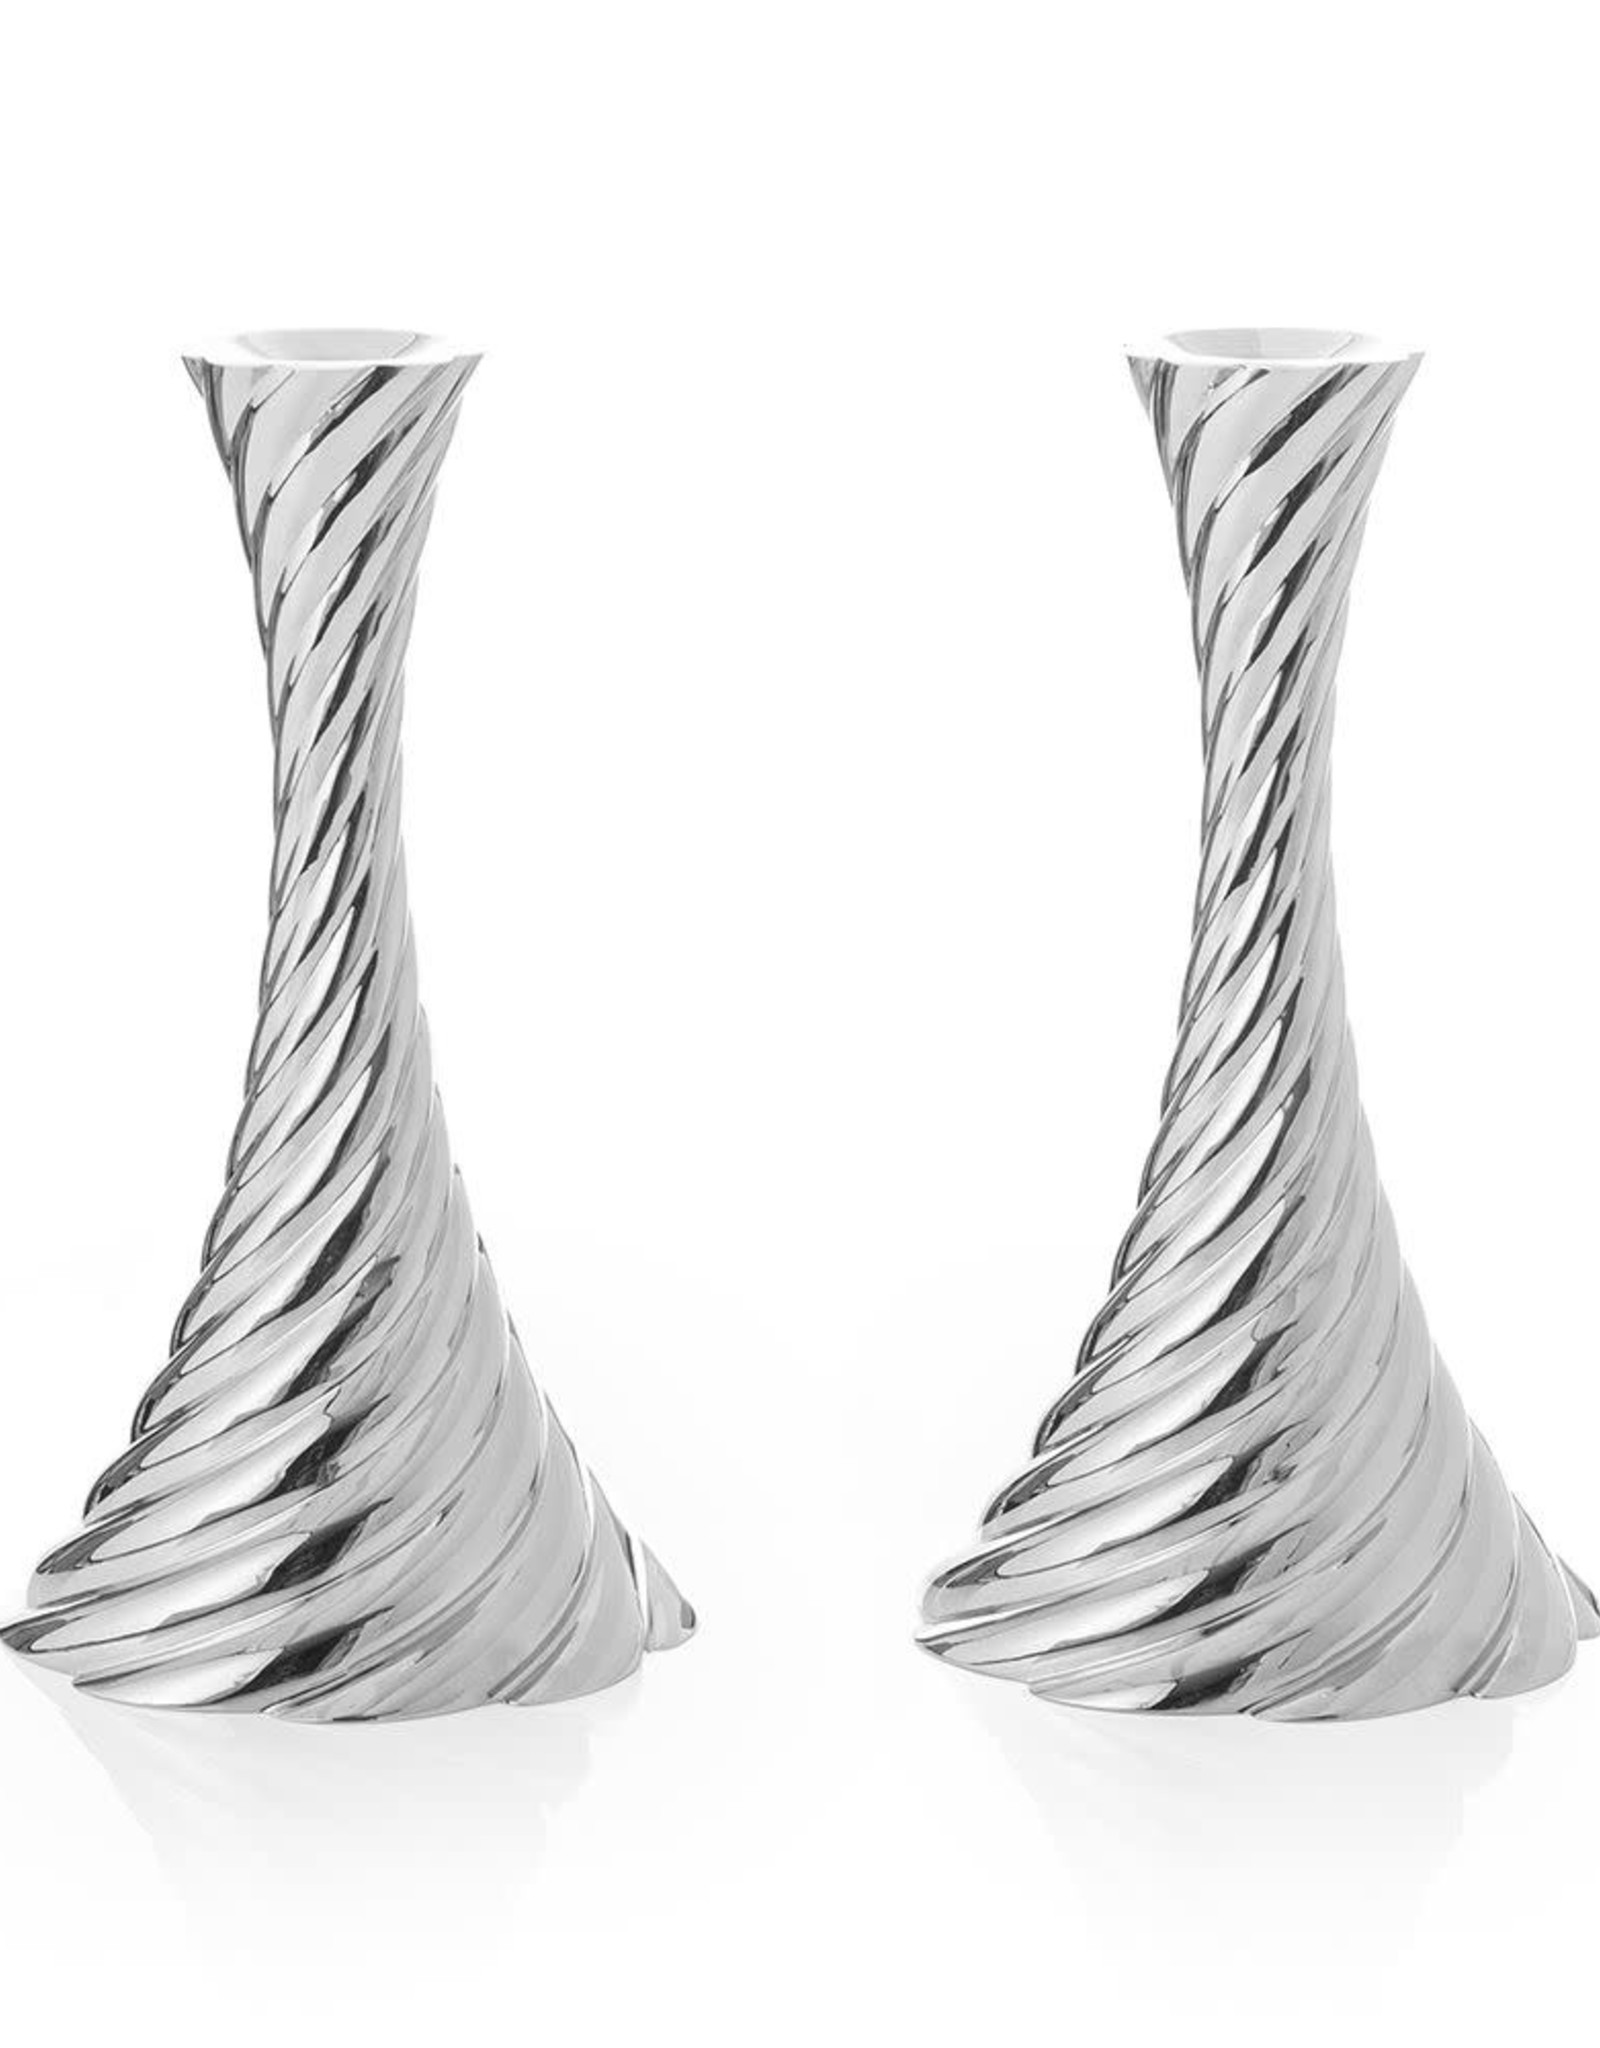 Michael Aram Twist Candle Holders Set/2